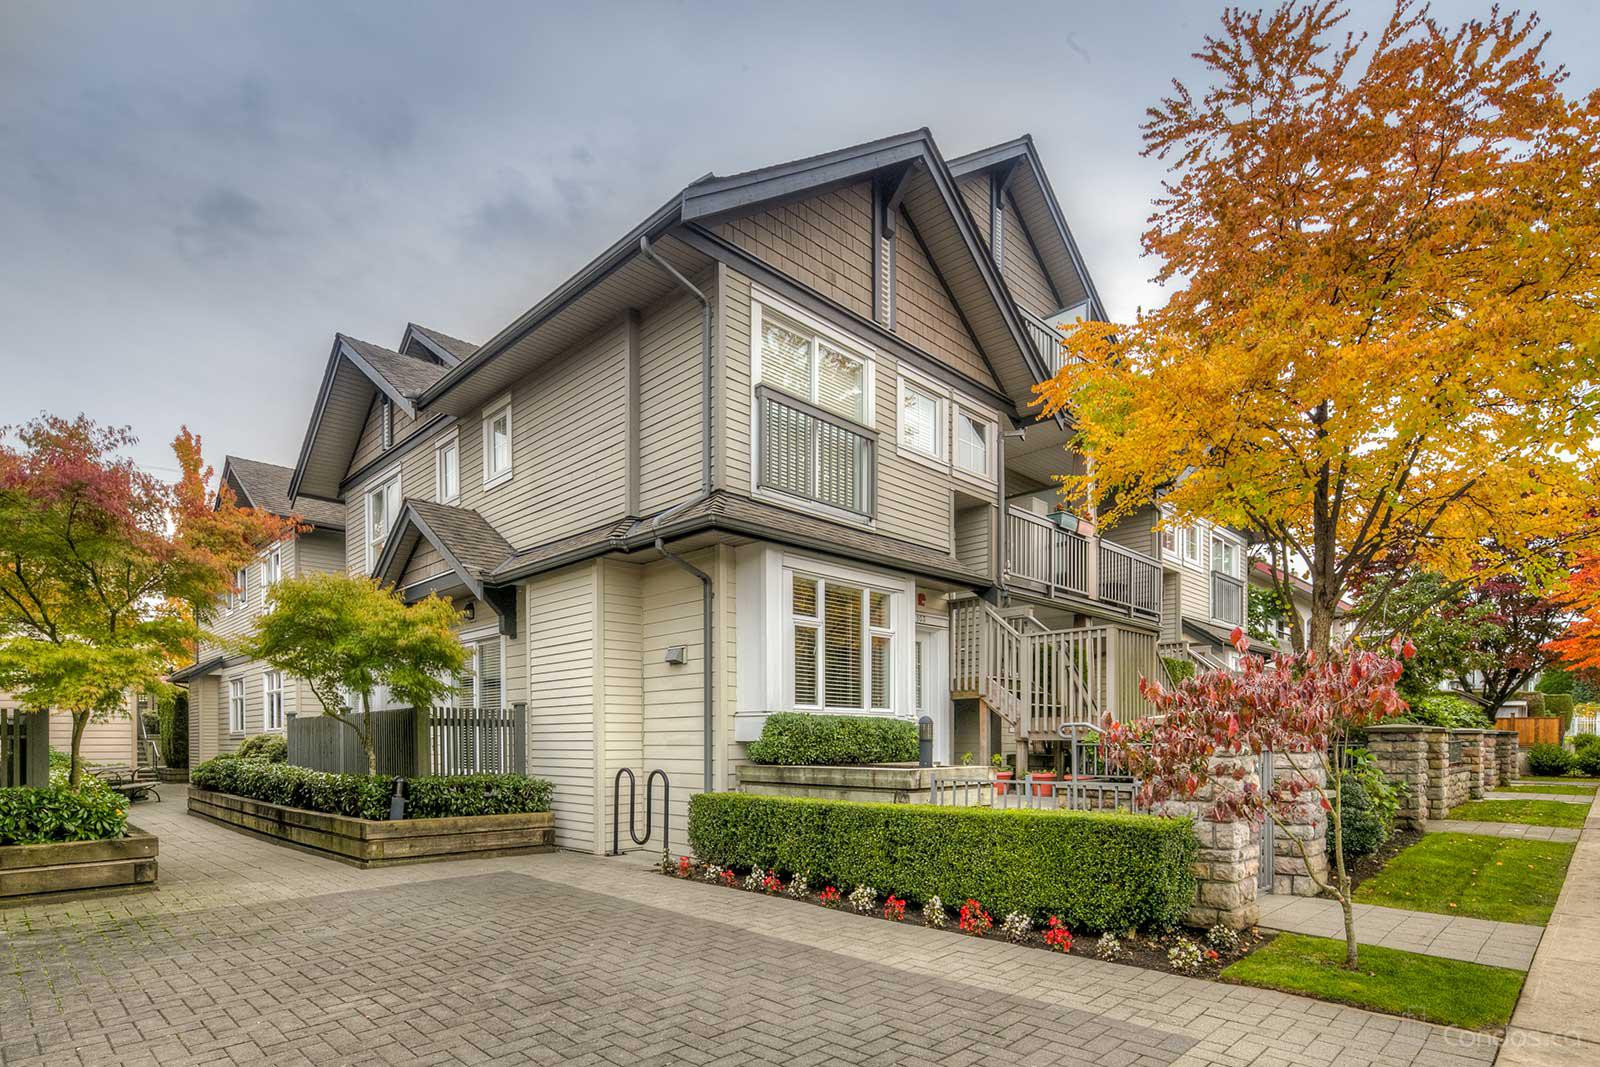 Monticello at 4458 Albert St, Burnaby 1